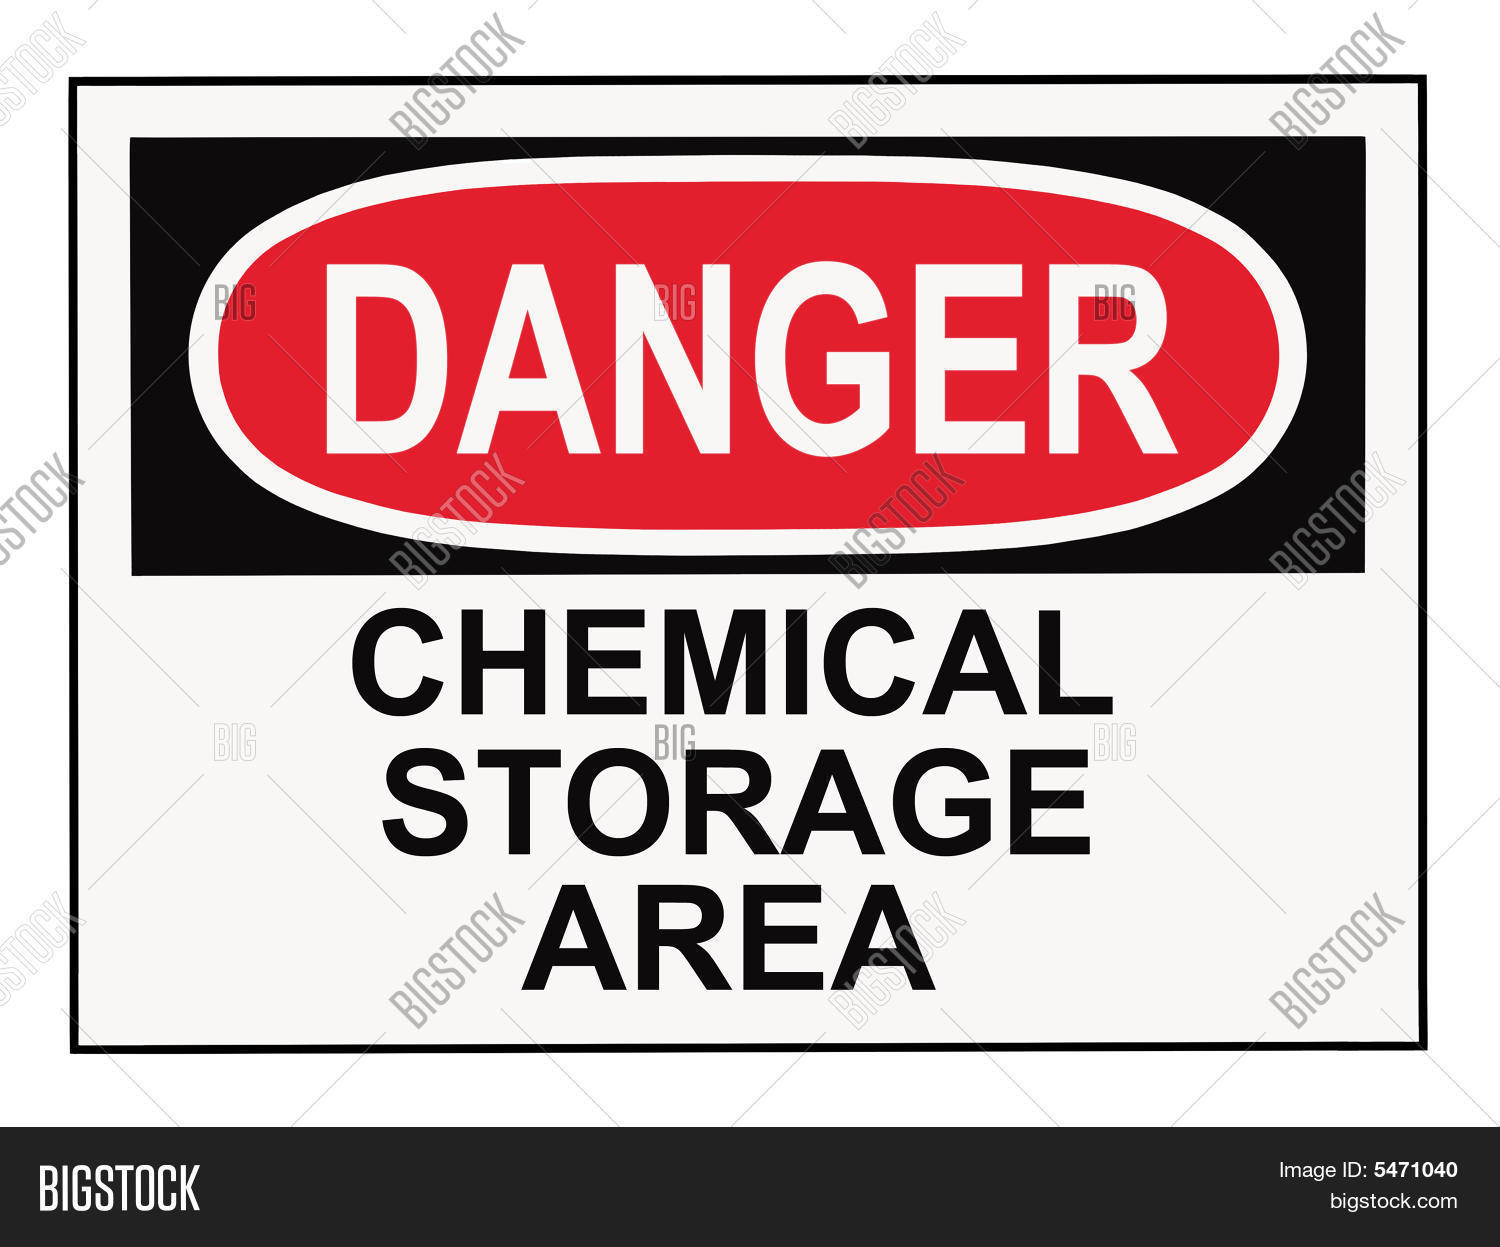 Danger Chemical Storage Area Image Amp Photo Bigstock